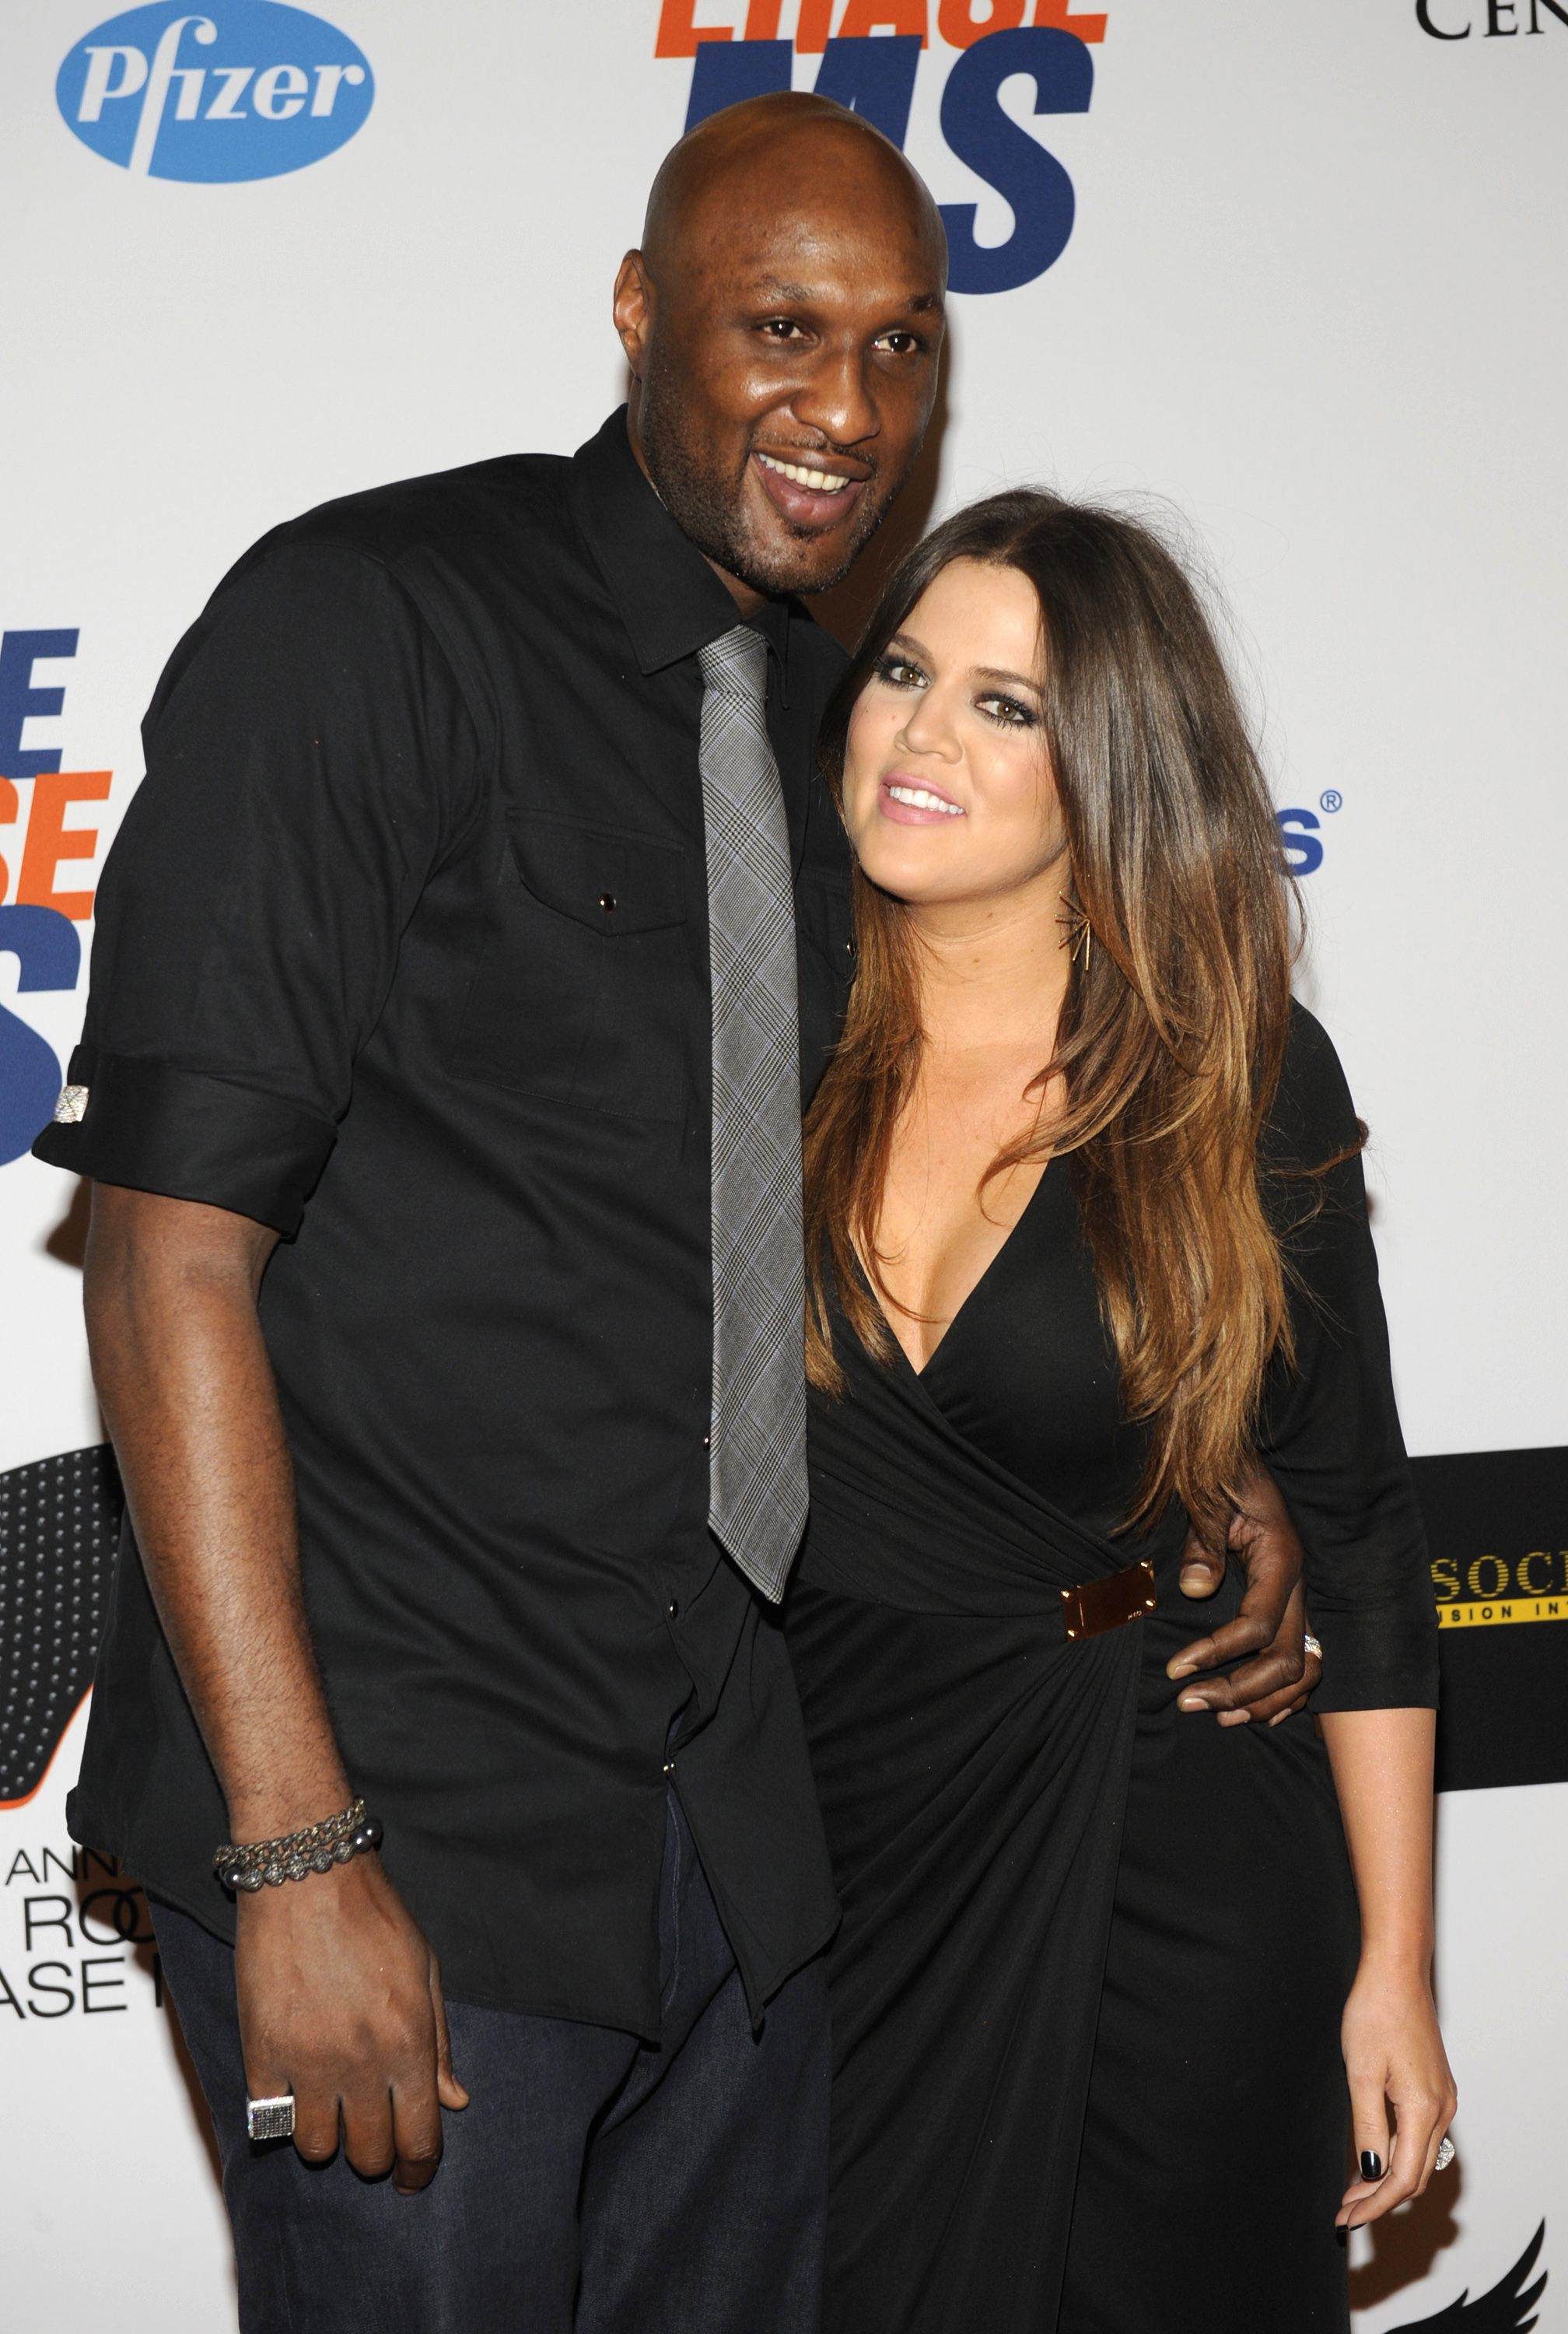 Lamar Odom Making  »Great Progress » After Waking Up From Coma but Setbacks Remain Possible